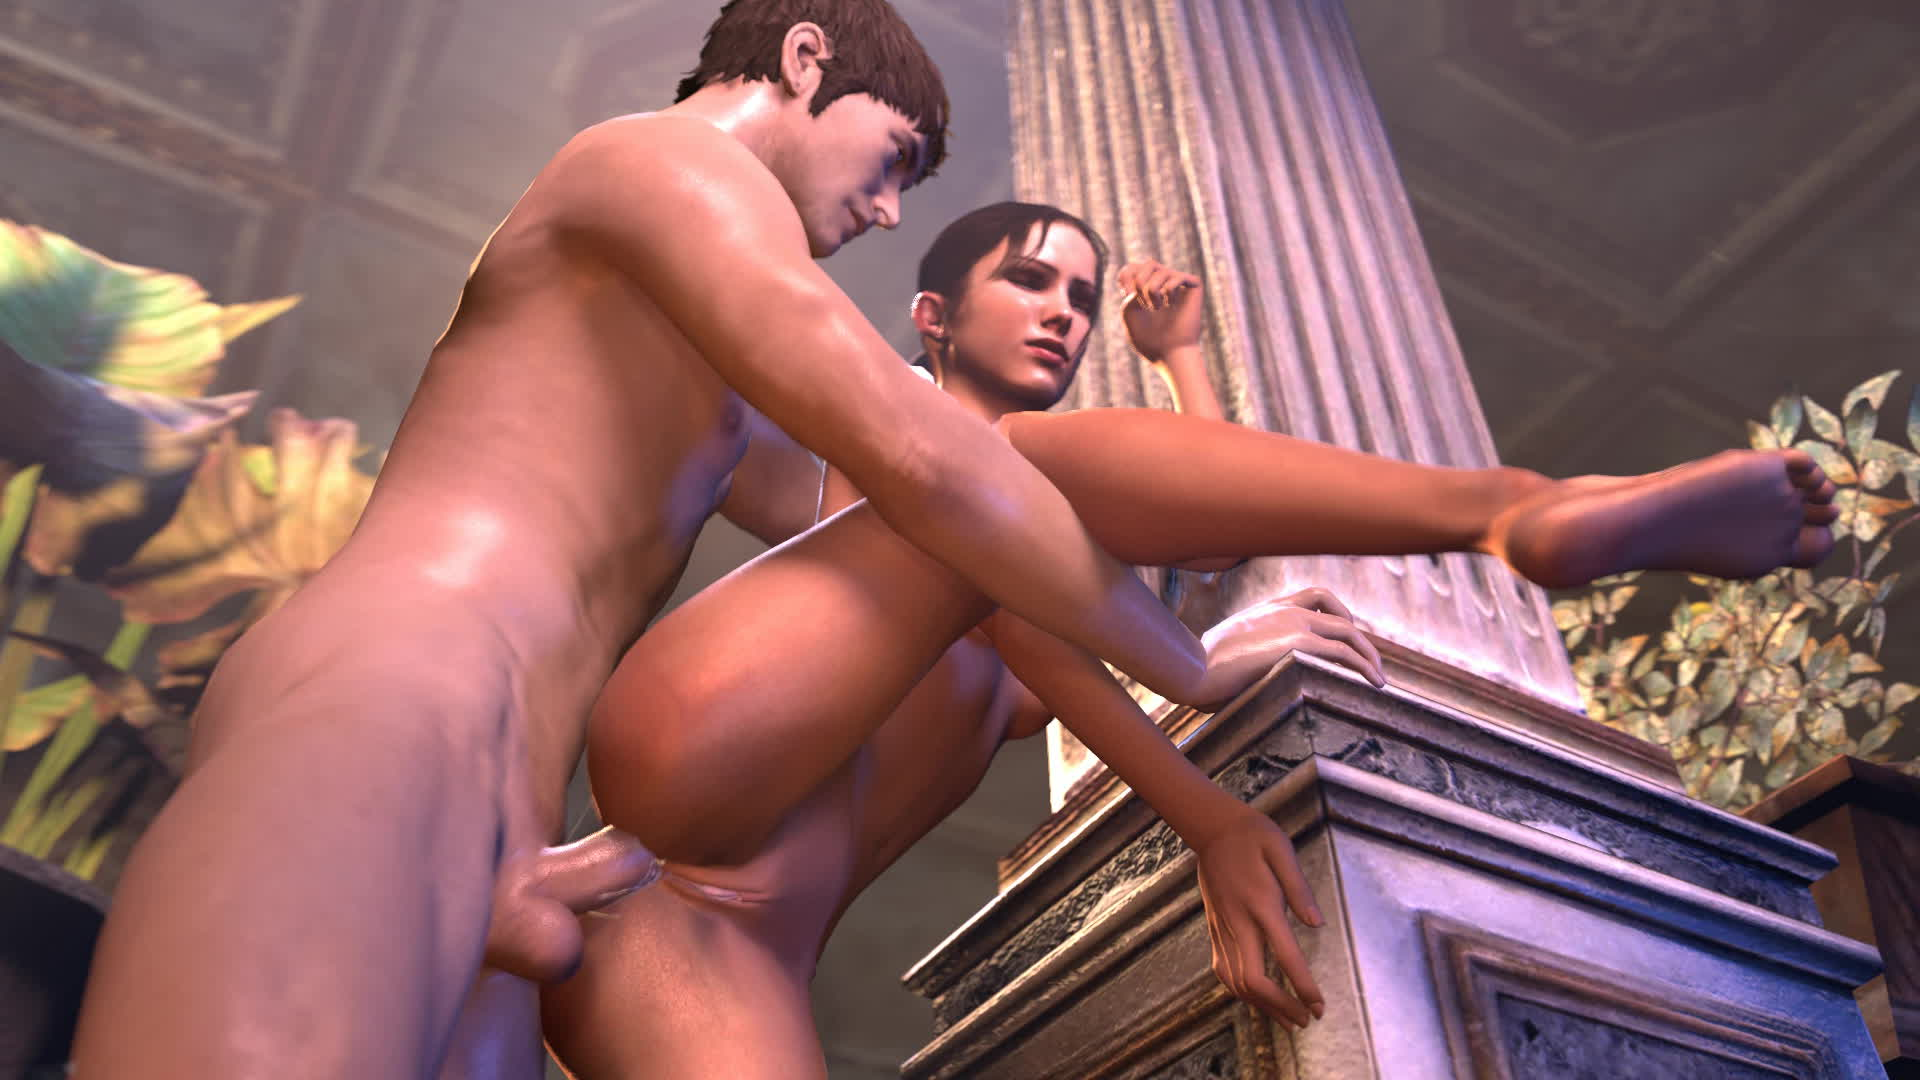 Zoey from left 4 dead fucked erotic picture